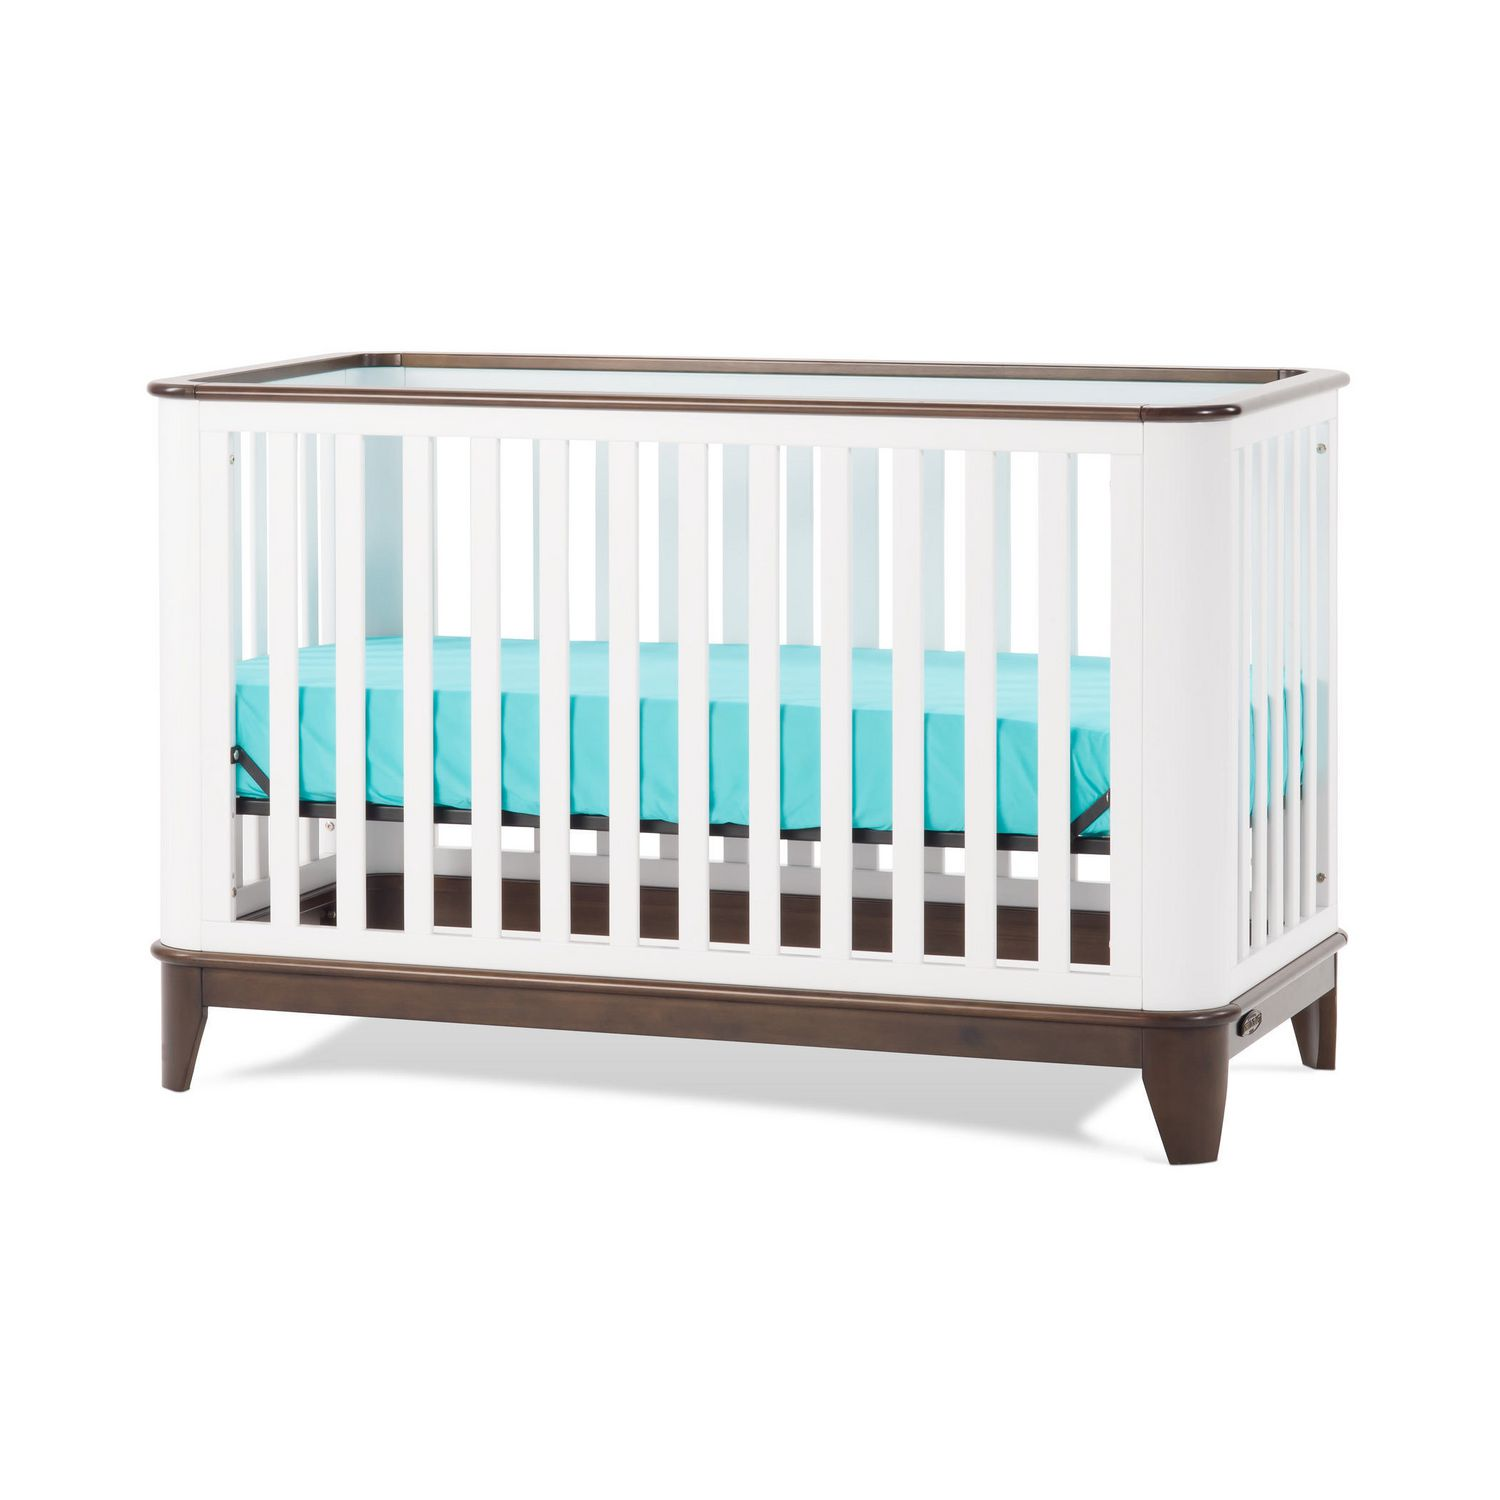 Used crib for sale ottawa - Child Craft Studio Crib